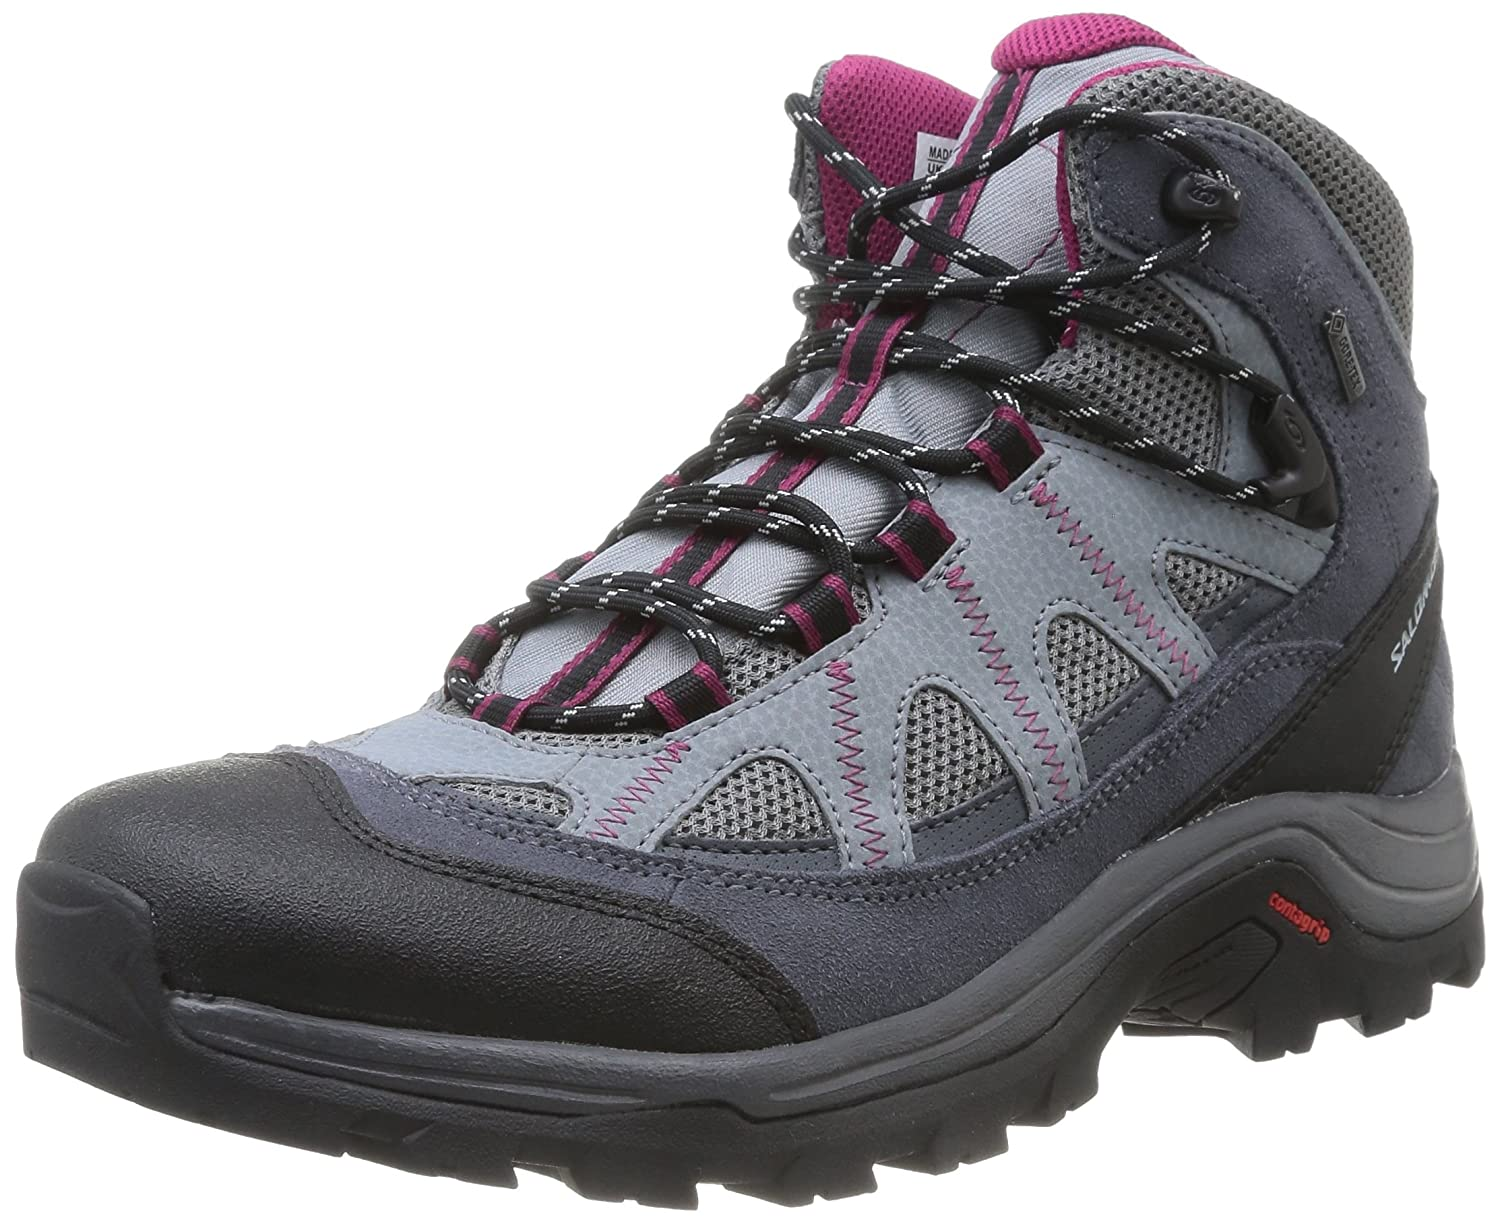 Salomon Damen Authentic Ltr GTX W Trekking- & Wanderstiefel grau